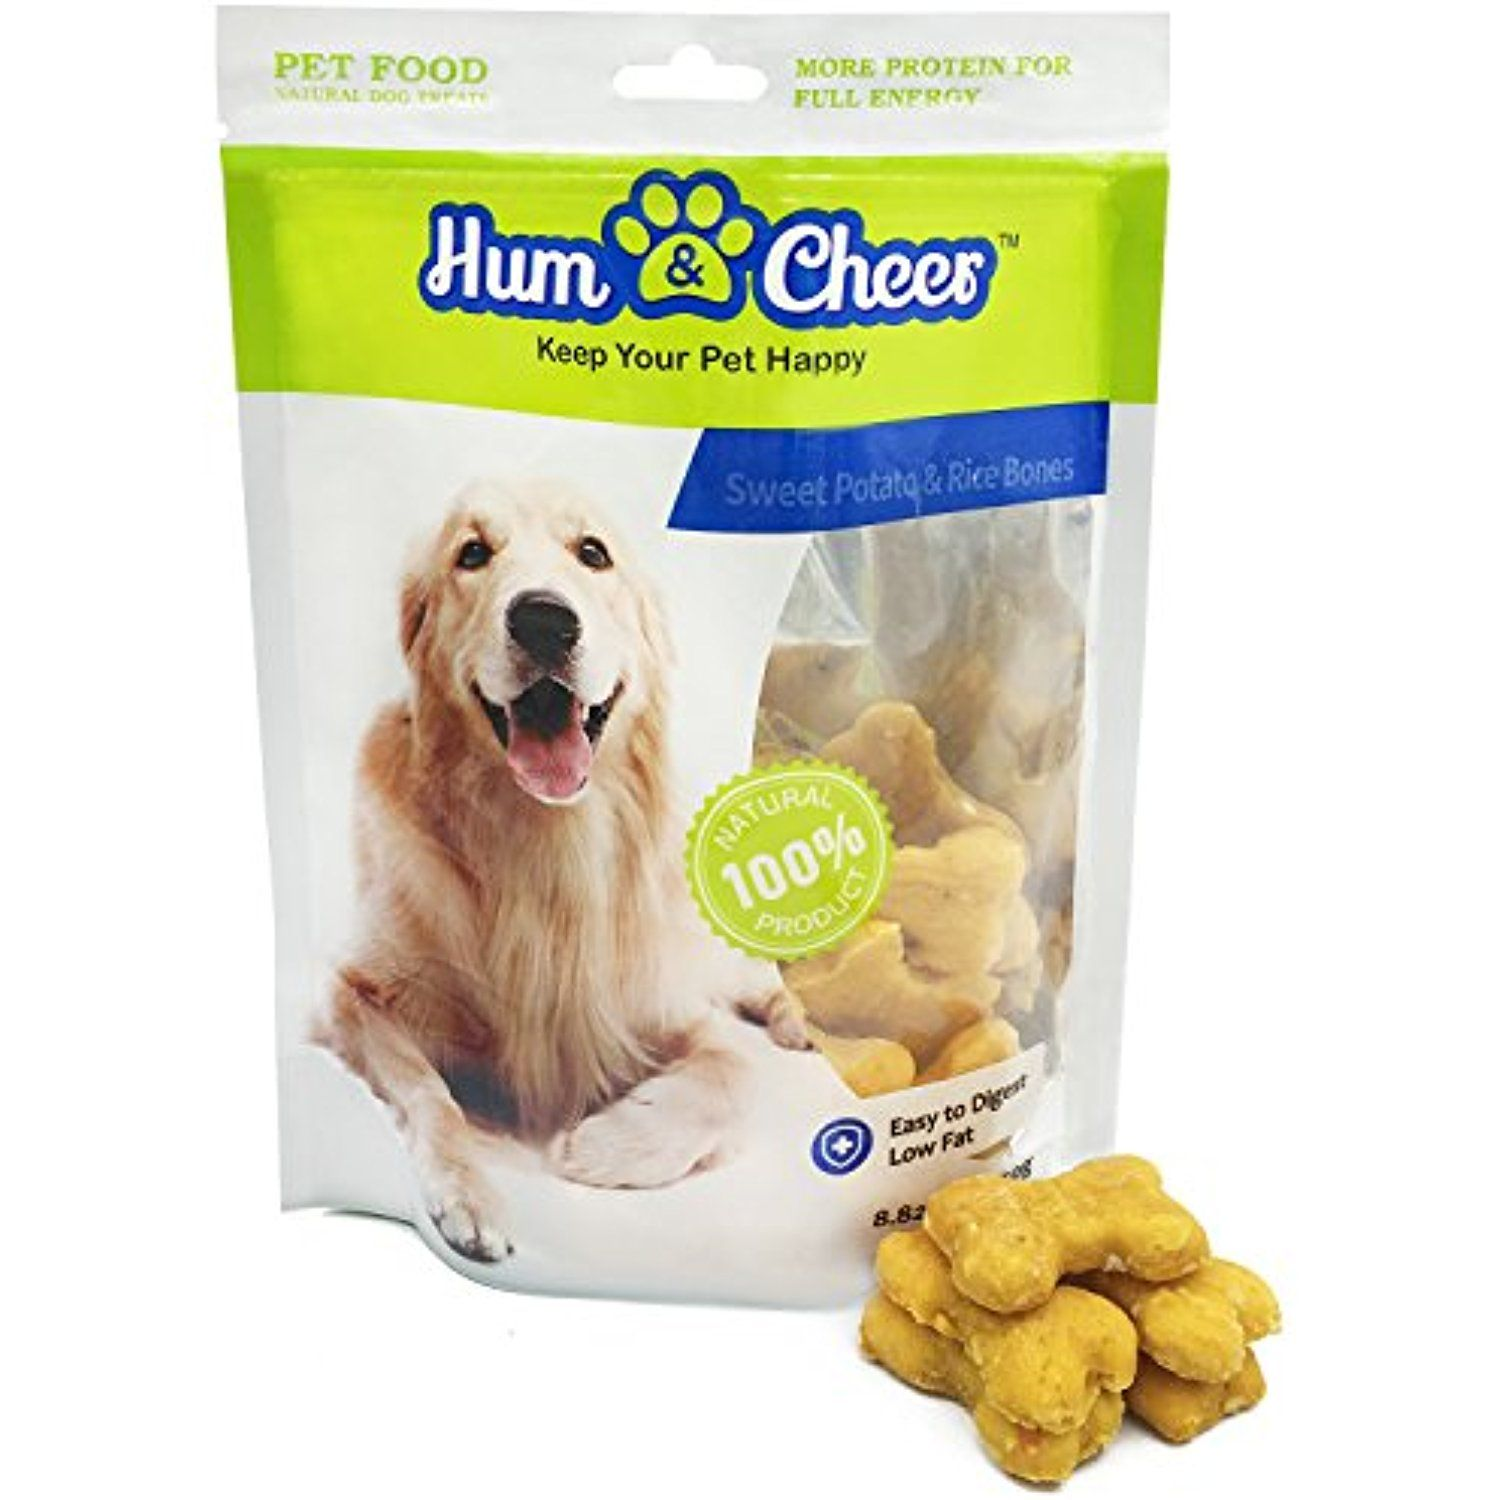 Hum Cheer Premium Dog Treats Sweet Potato Rice Bones For Dog